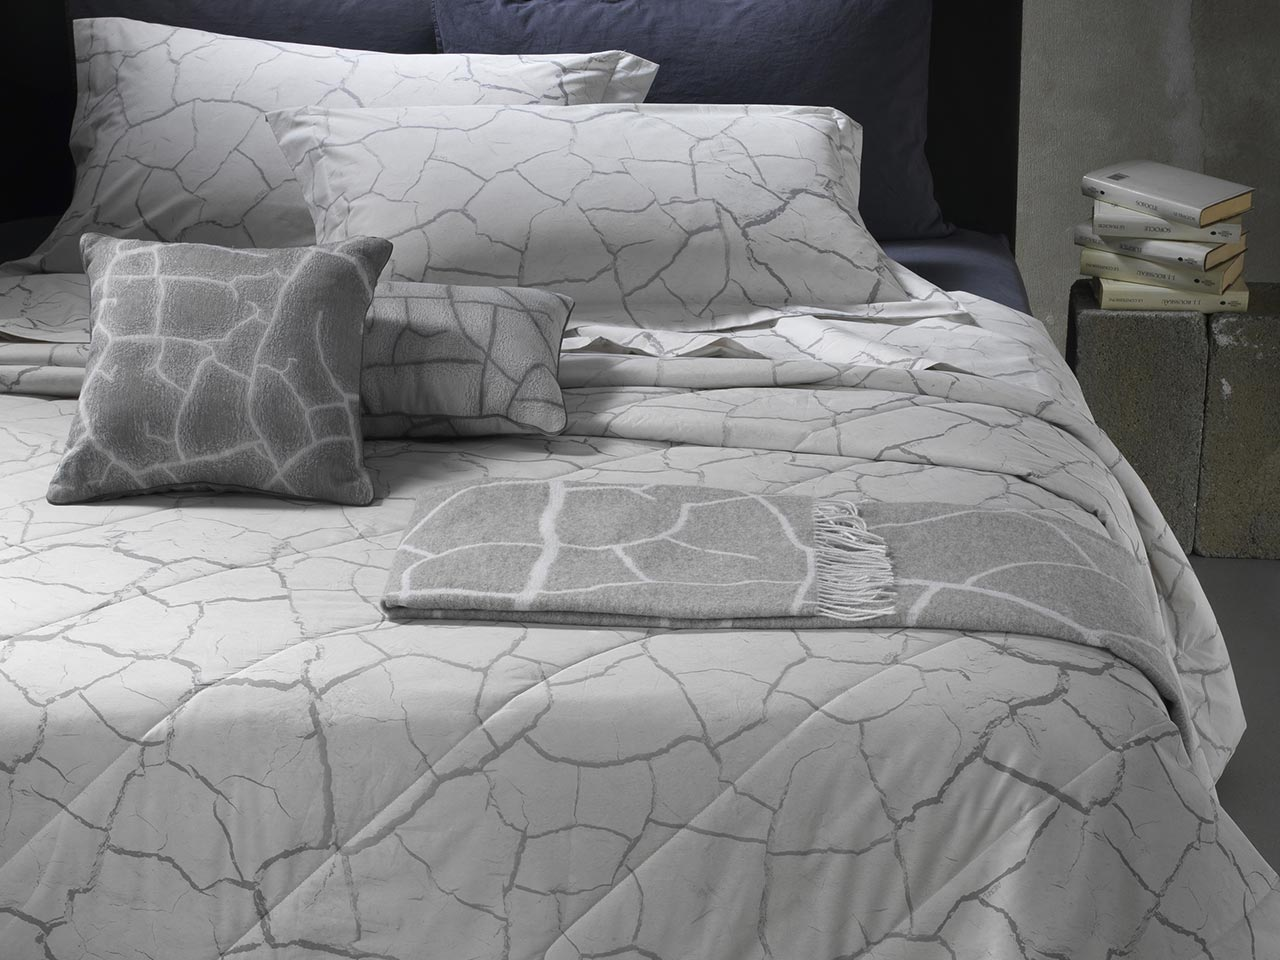 CRACKLE Mirabello for Diesel - Home Textile